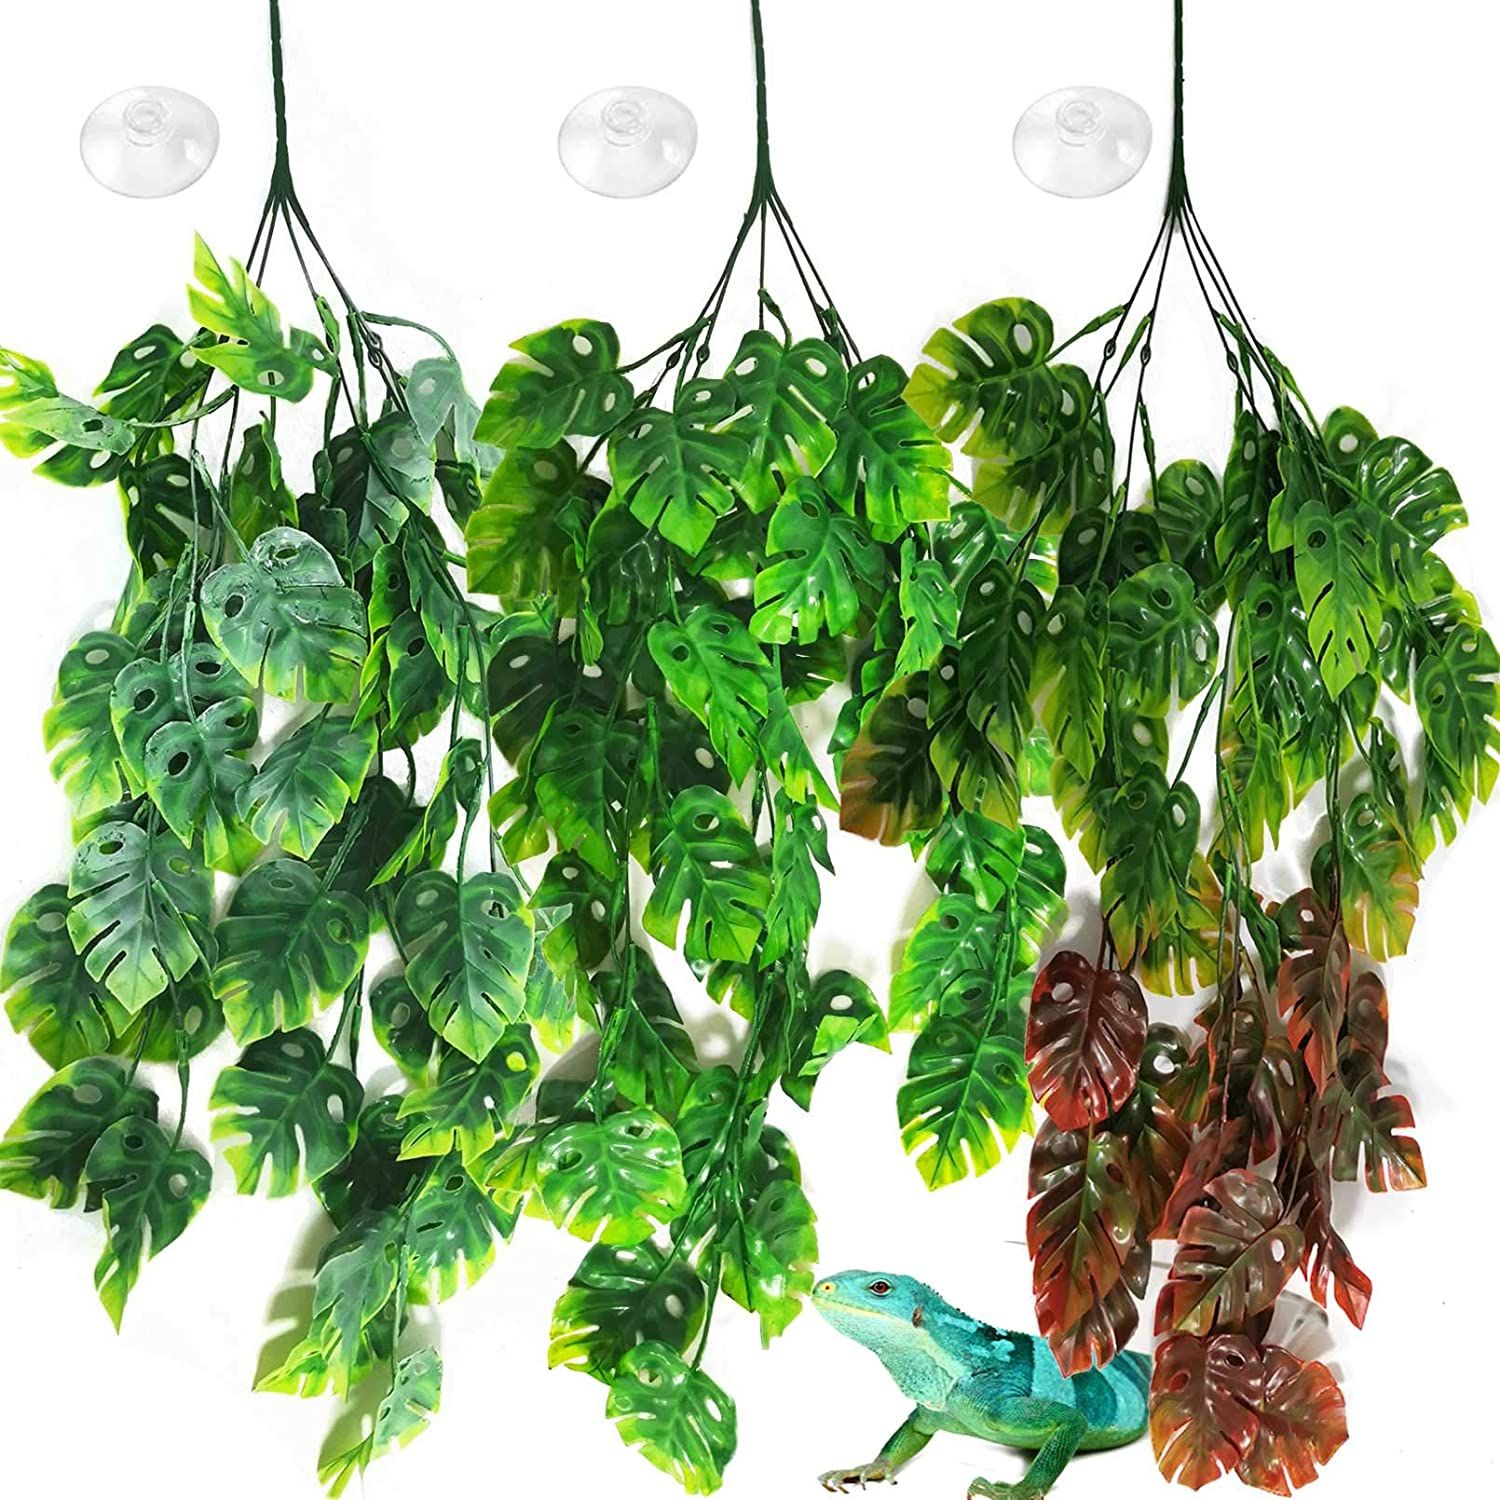 PINVNBY Reptile Plants Hanging Terrarium Plastic Fake Vines Lizards Climbing Decor Tank Habitat Decorations with Suction Cup for Bearded Dragons Geckos Snake Hermit Crab 3PCS